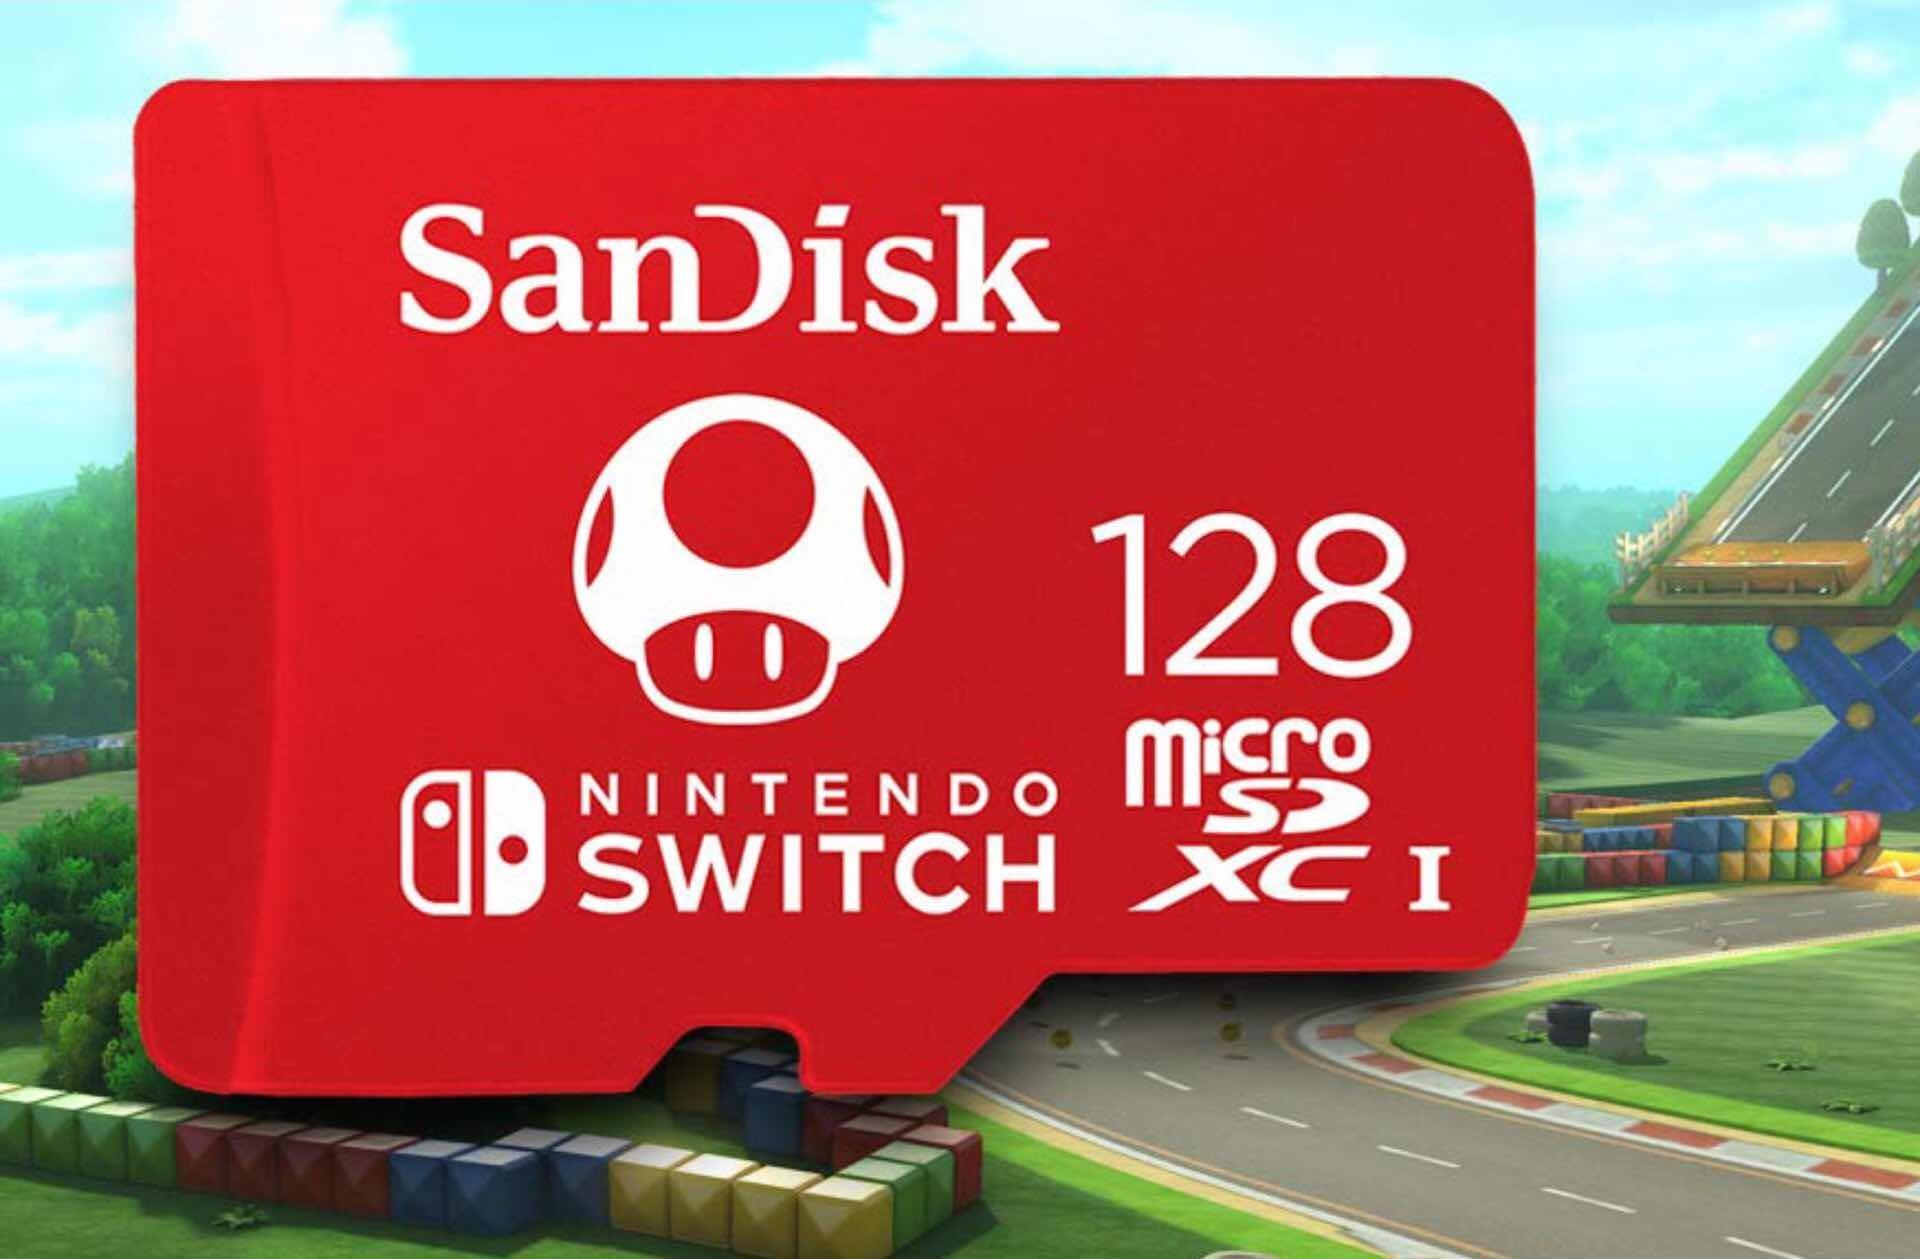 nintendo-switch-lite-launch-guide-micro-sdxc-card-storage